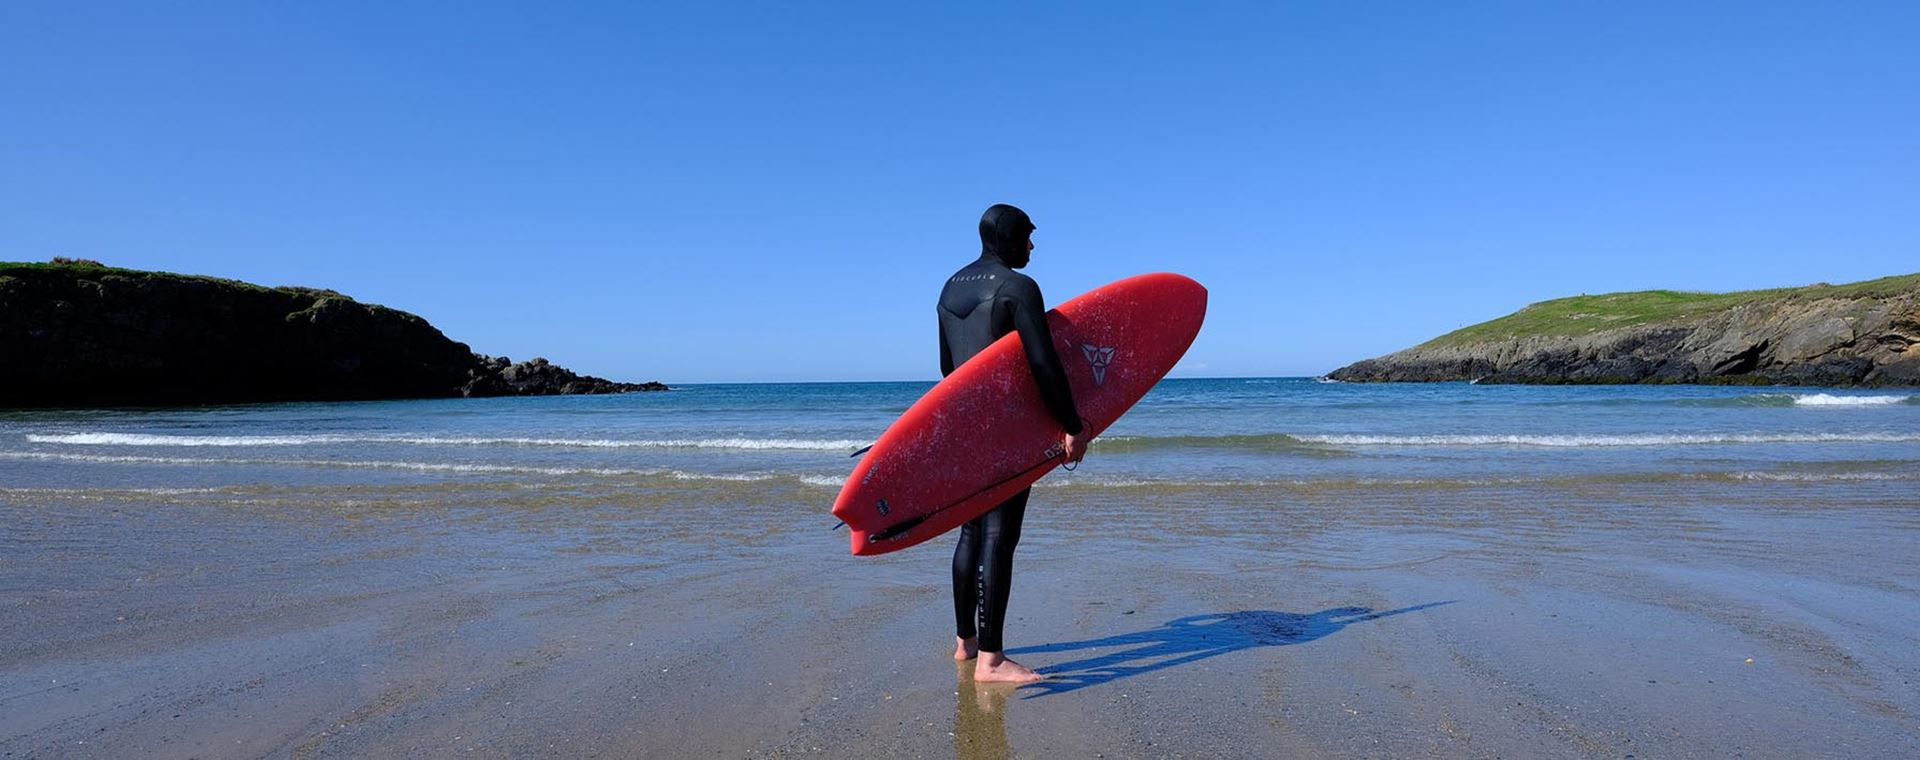 Surfing on a beach in North Wales